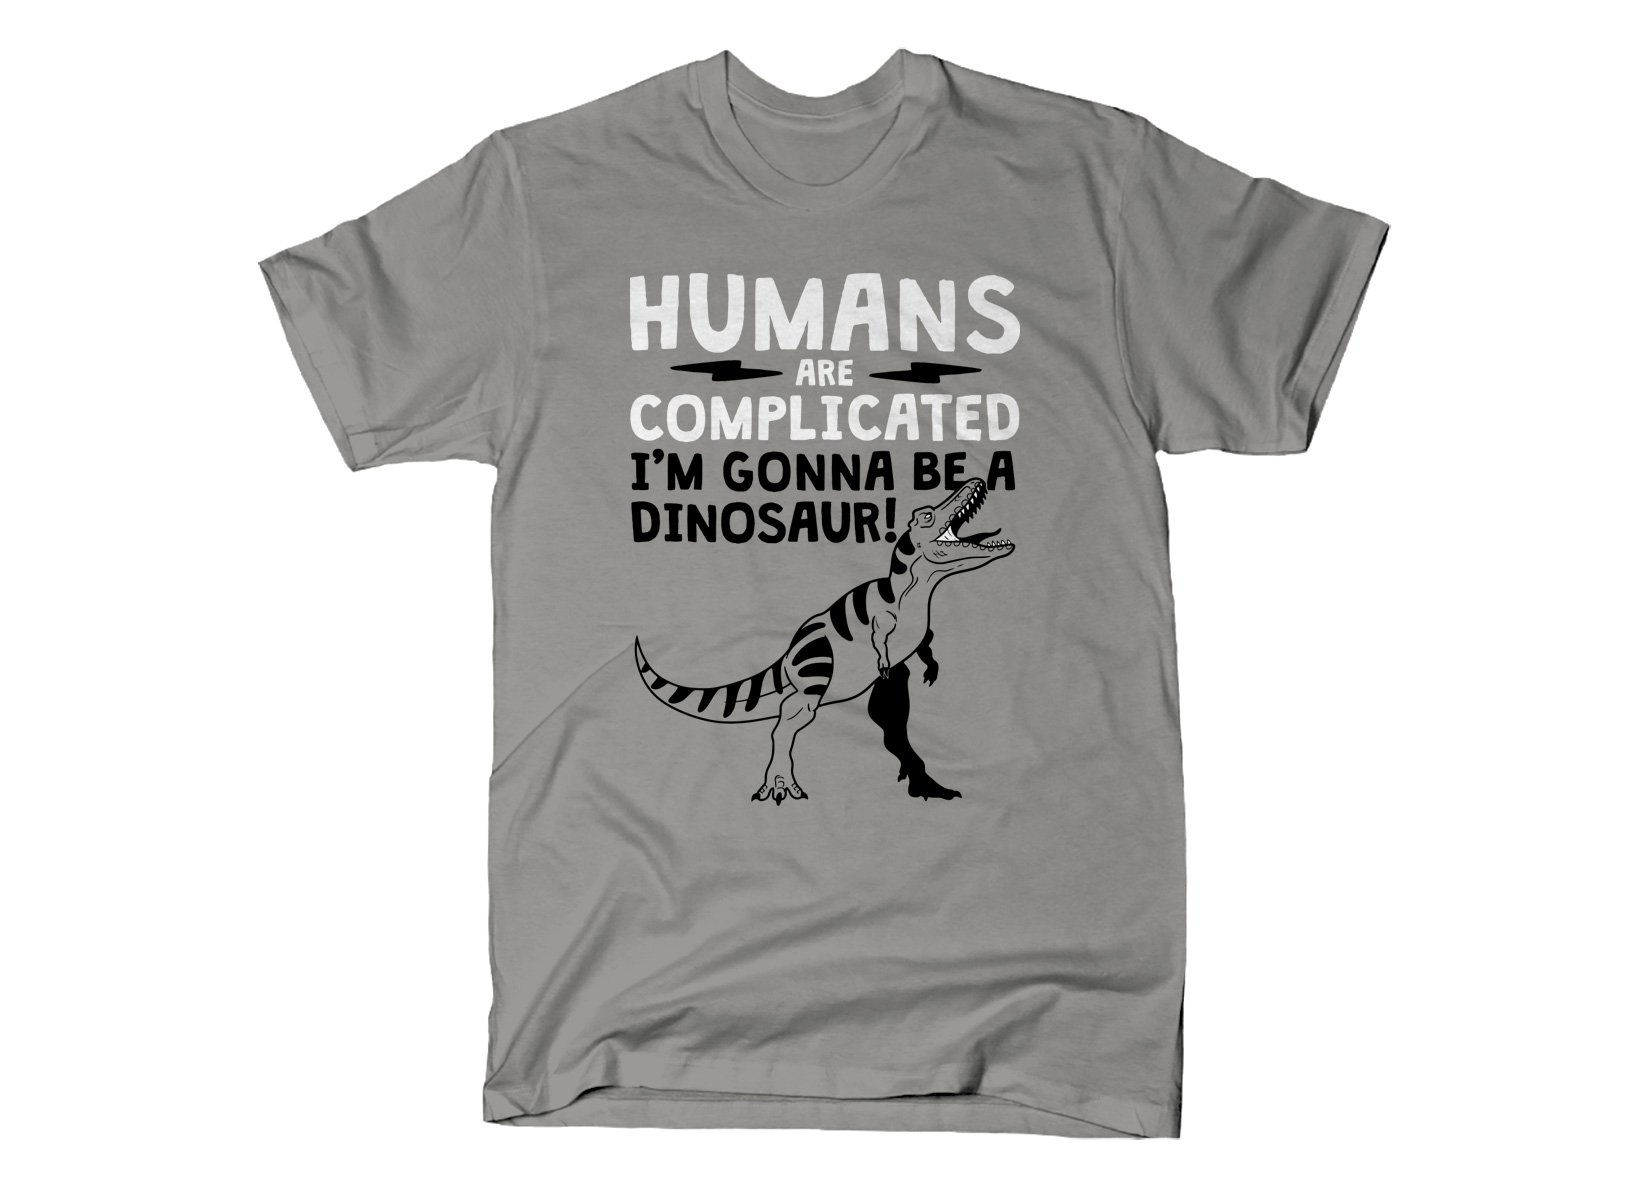 Humans Are Complicated on Mens T-Shirt